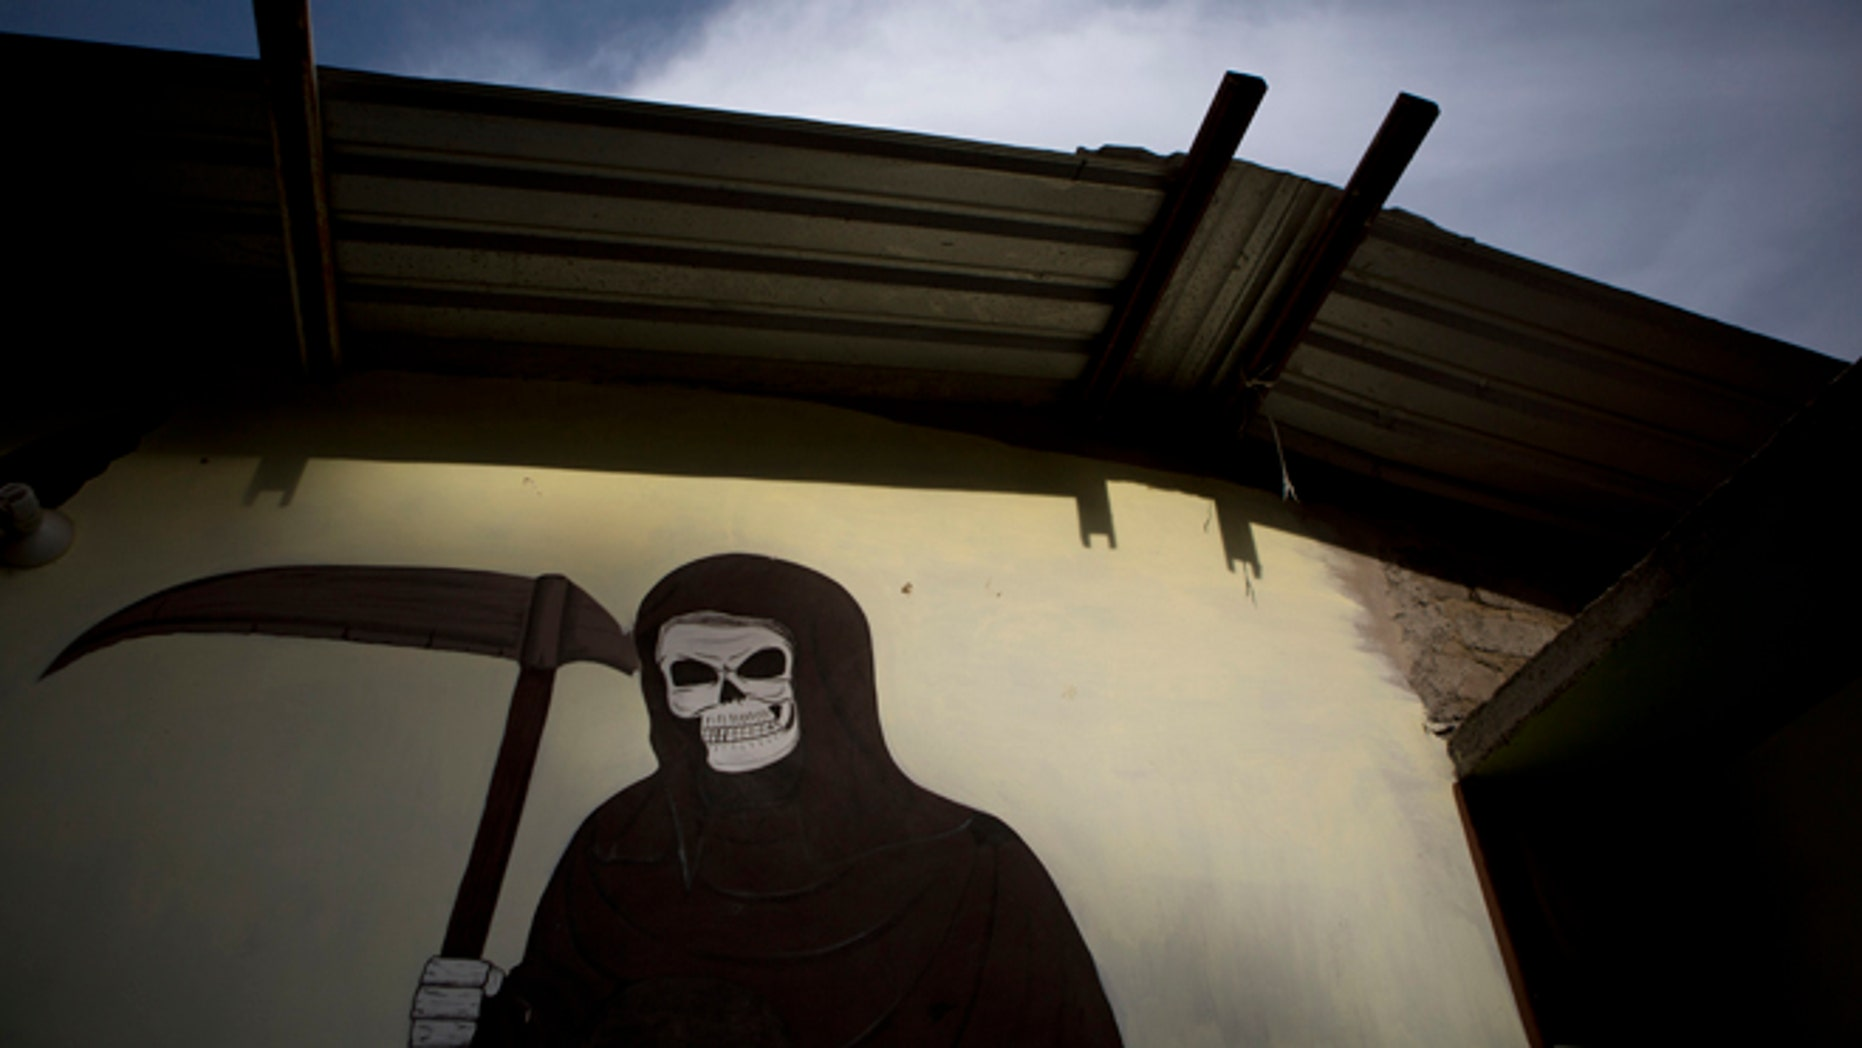 A mural of La Santa Muerte, or Saint Death, decorates the wall of a community center in Colonias, Michoacan state, Mexico, where vigilantes met with the families of a Tuesday shooting that took place in nearby Apatzingan, on Thursday, Jan. 8, 2015.  Confrontations in Apatzingan began Tuesday when federal forces moved in to take control of city hall, which had been held for days by civilians whose demands and identities were unclear, according to Michoacan state Commissioner Alfredo Castillo. The second clash came when gunmen attacked soldiers who were transporting the seized vehicles to an impound lot, Castillo said. However, family members and witnesses tell a different story, one with a higher death toll. (AP Photo/Rebecca Blackwell)